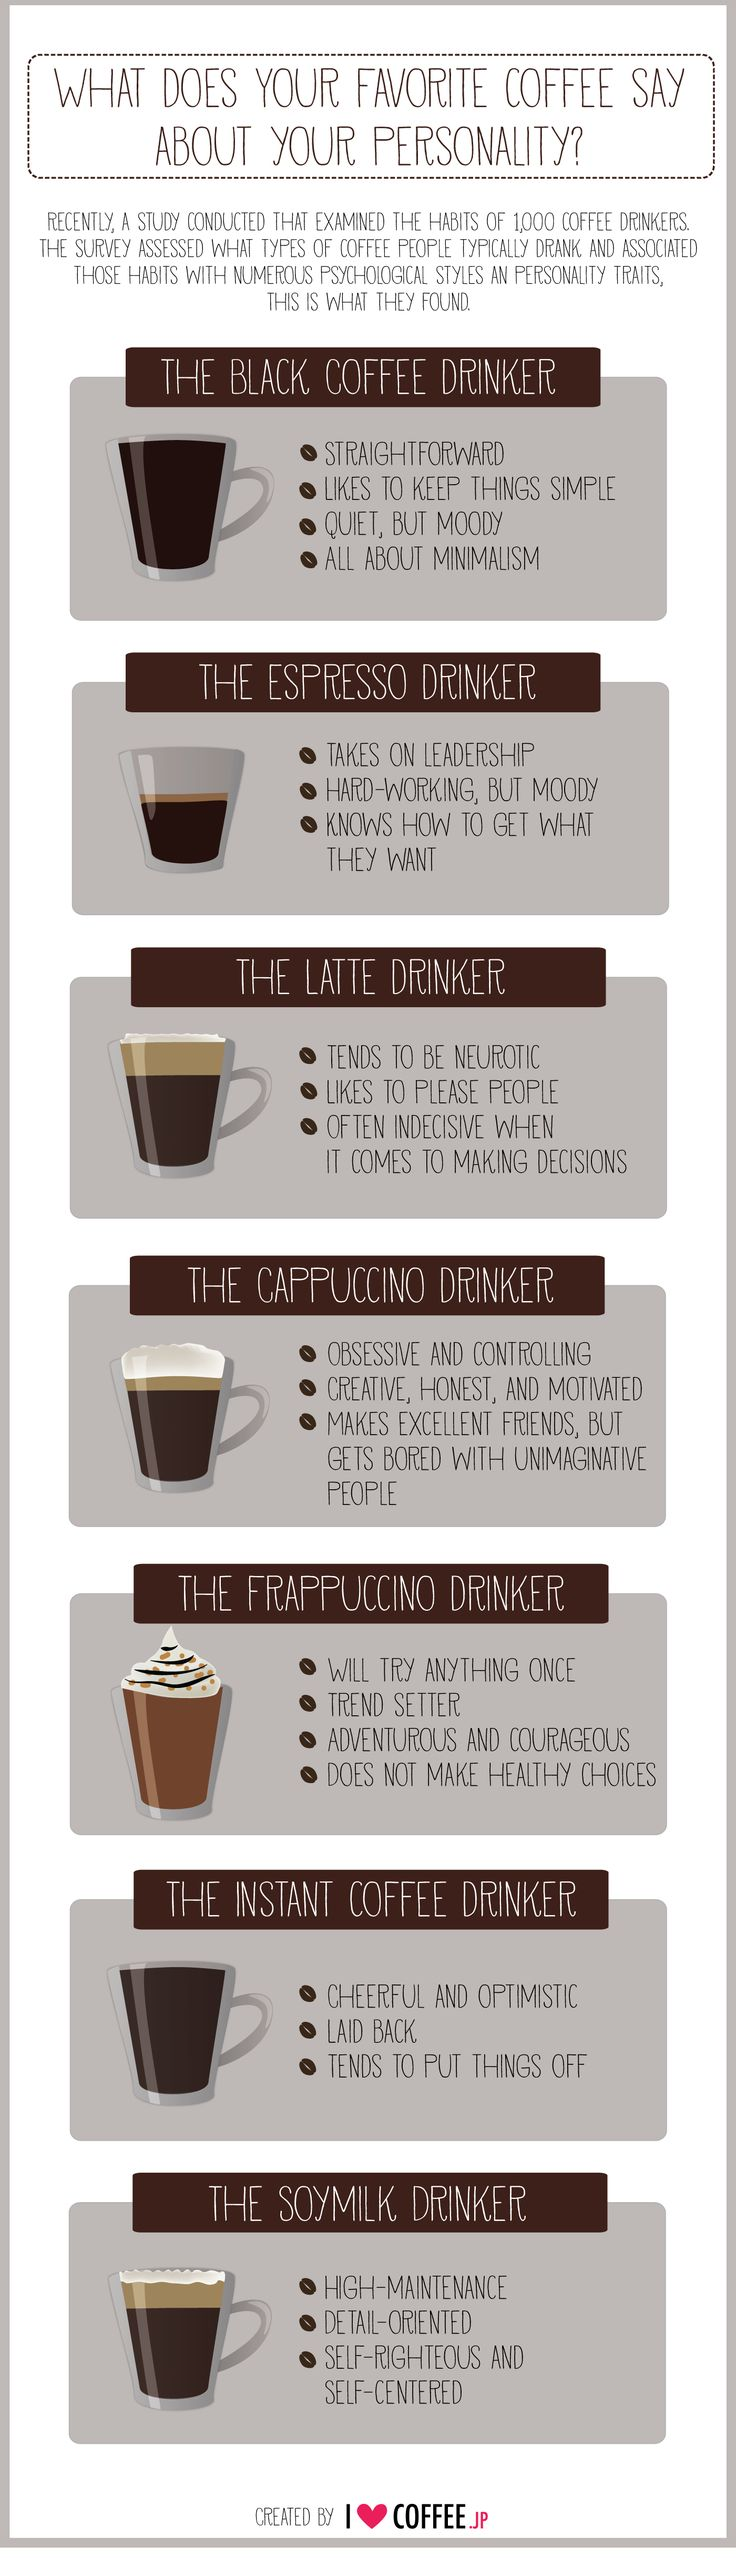 A study shows that your favorite coffee drink can reflect your personality. Do you agree? #crazycatcoffee